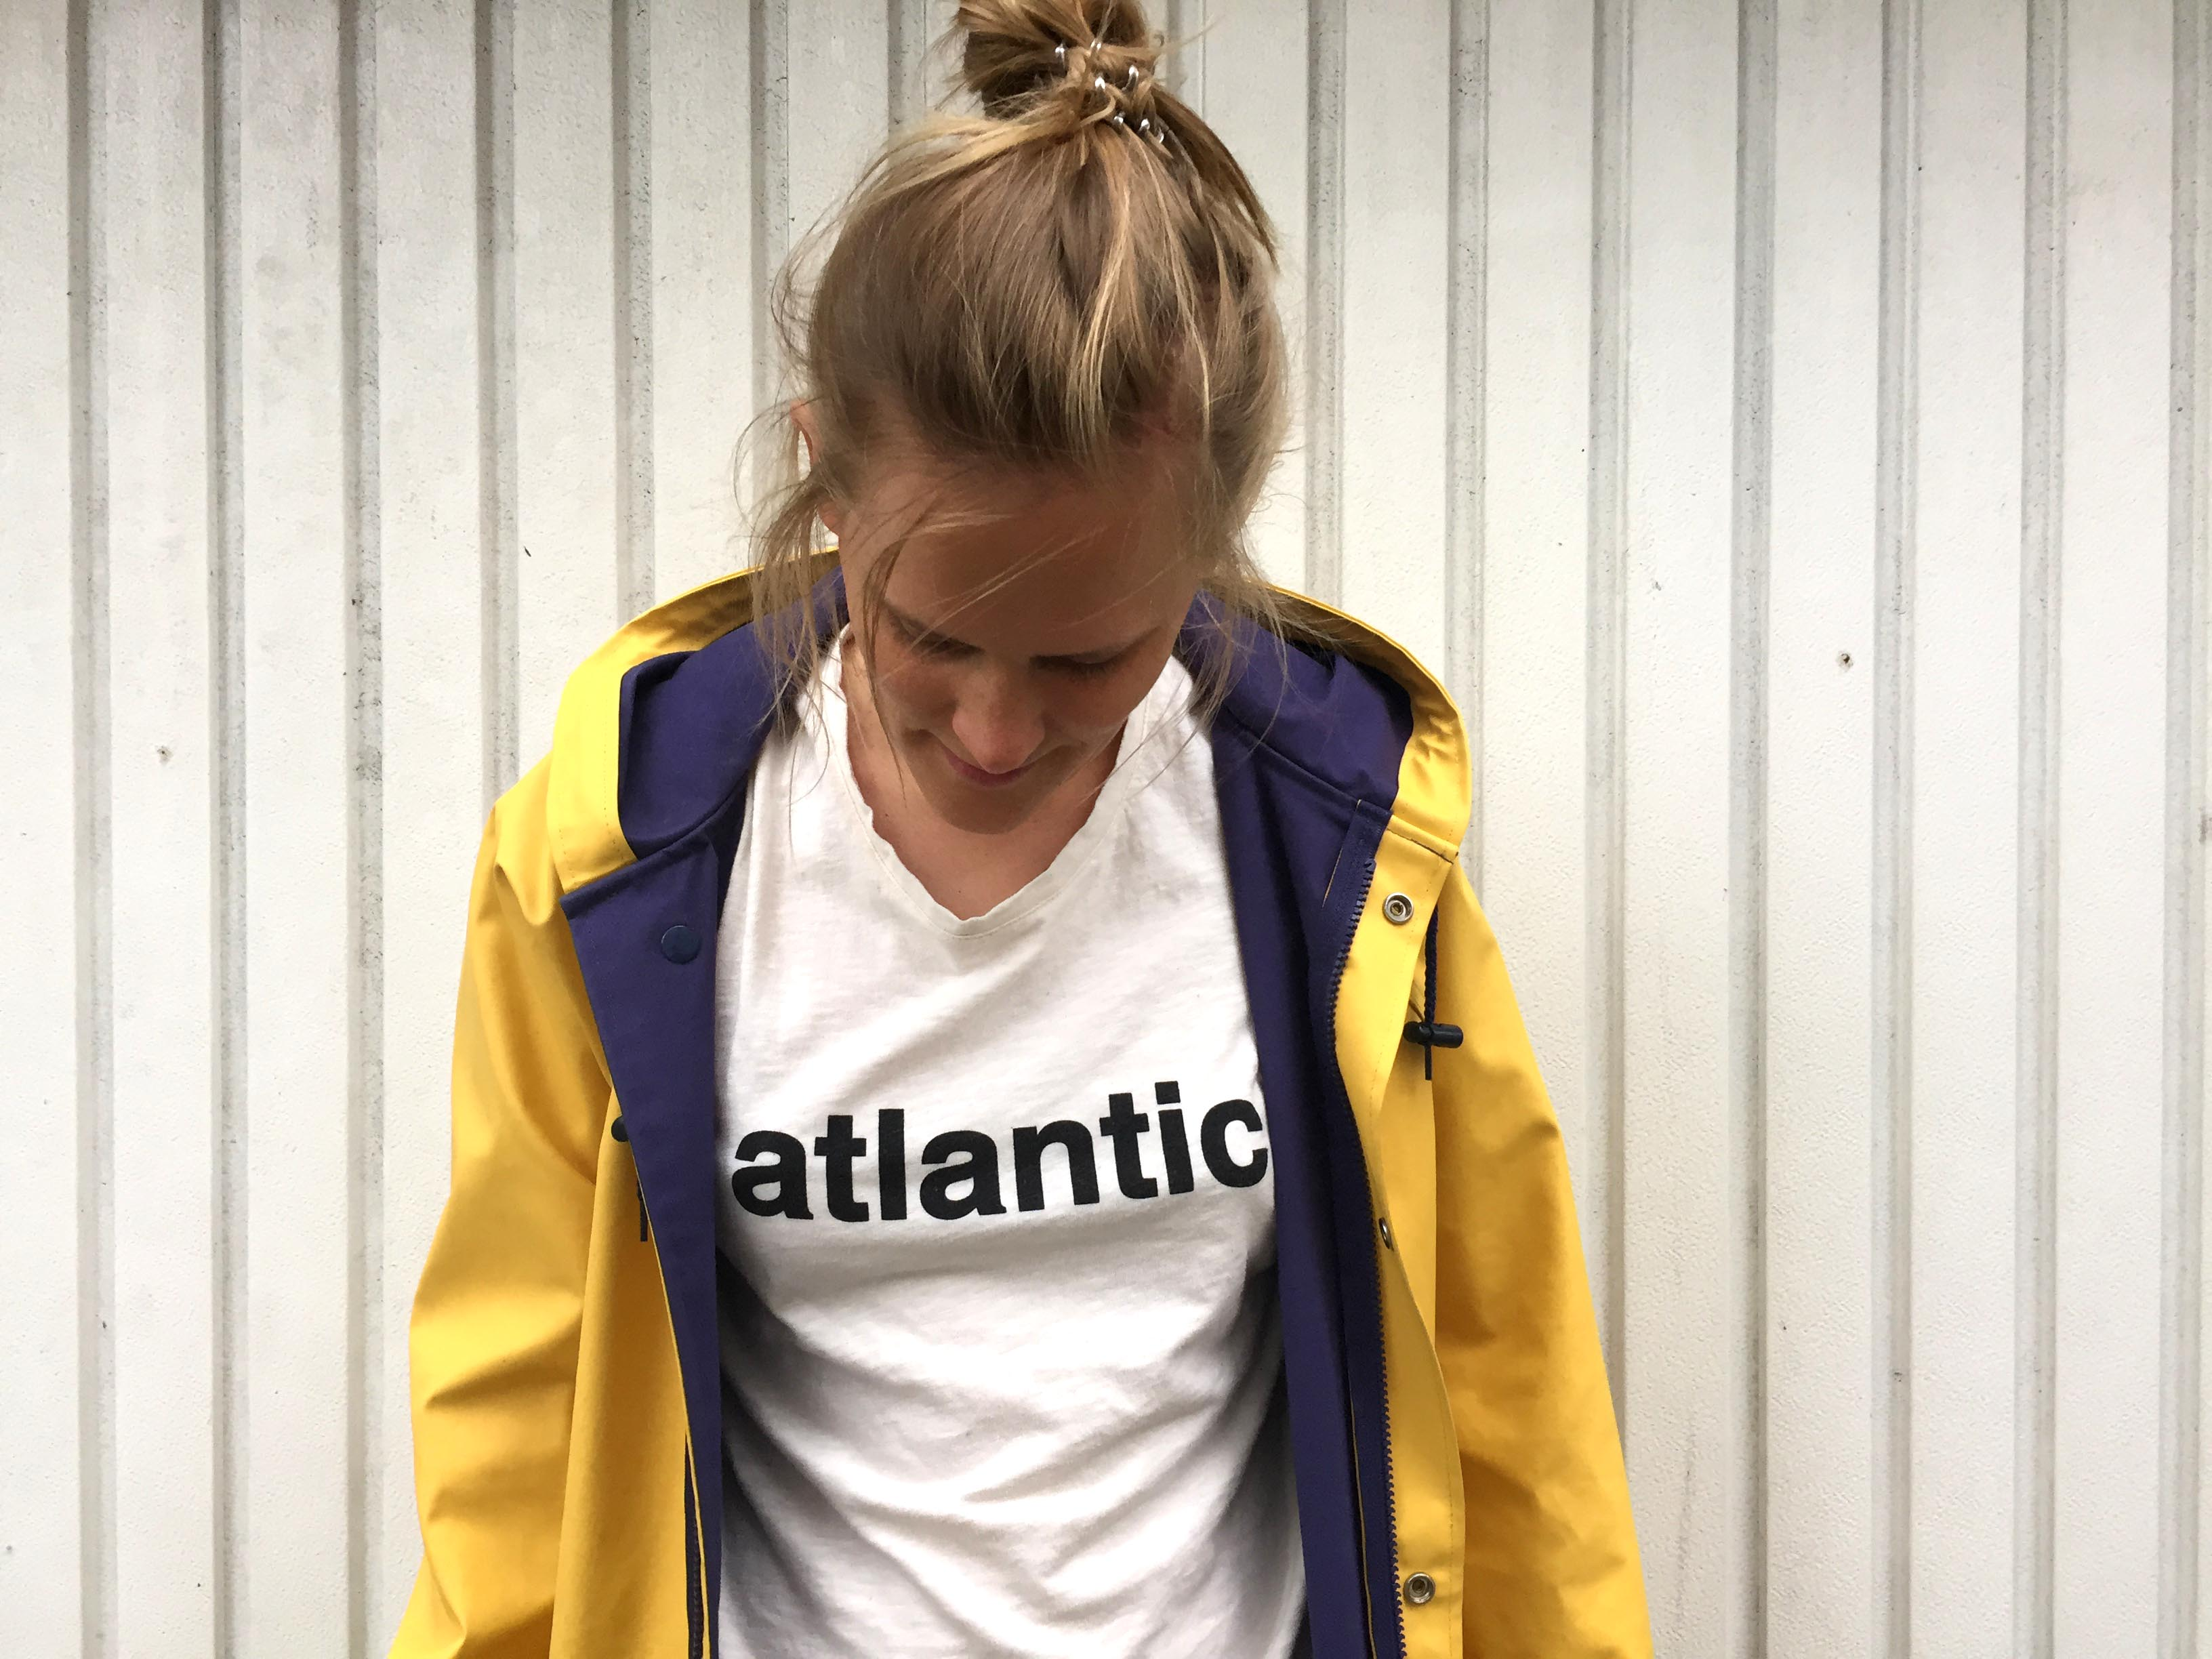 atlantic love Metterschling 2017